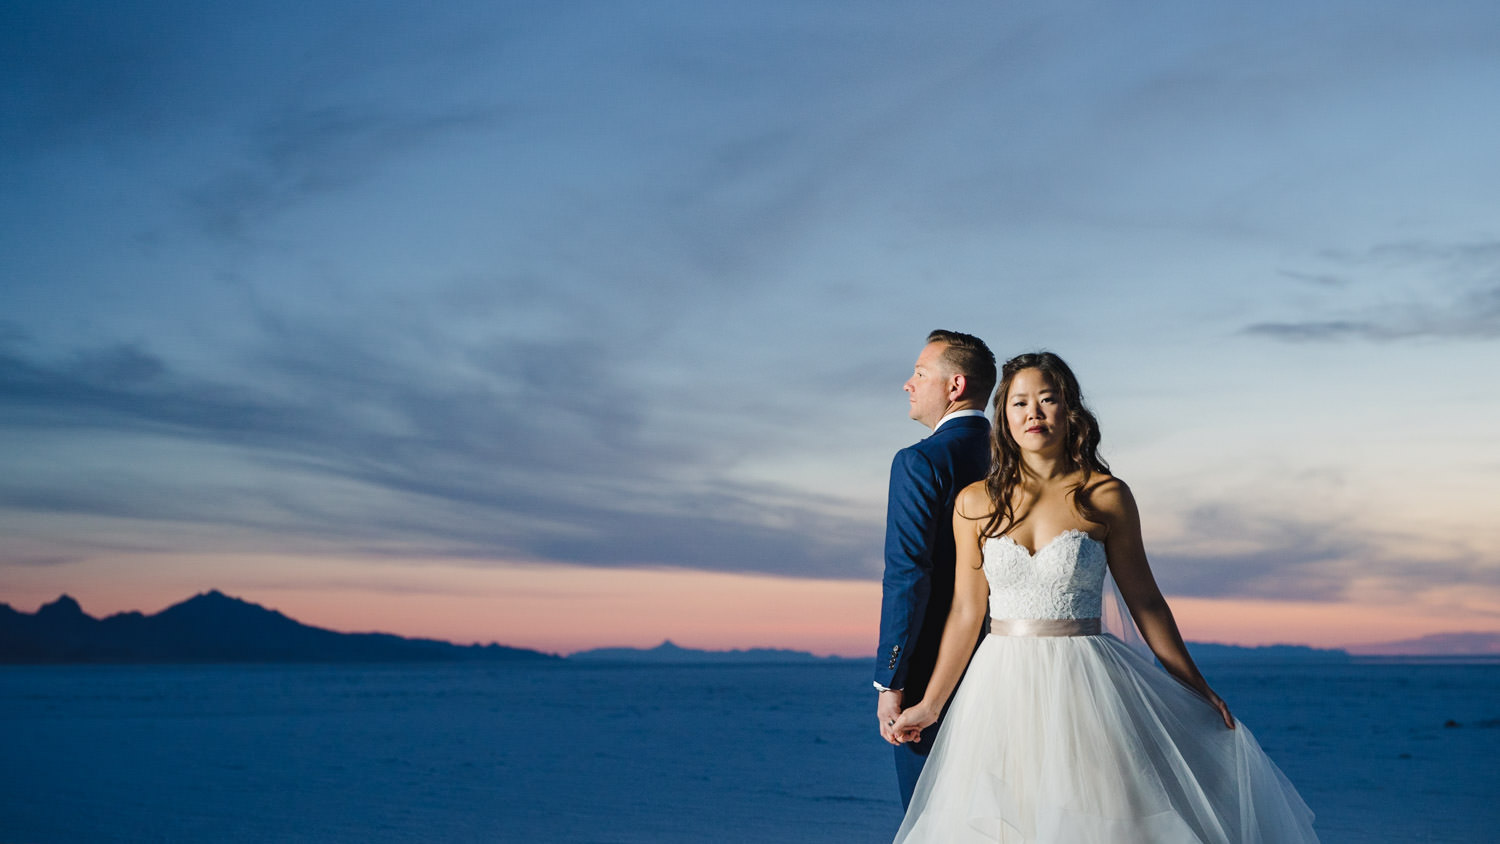 Bonneville Salt Flats wedding portrait during blue hour photo